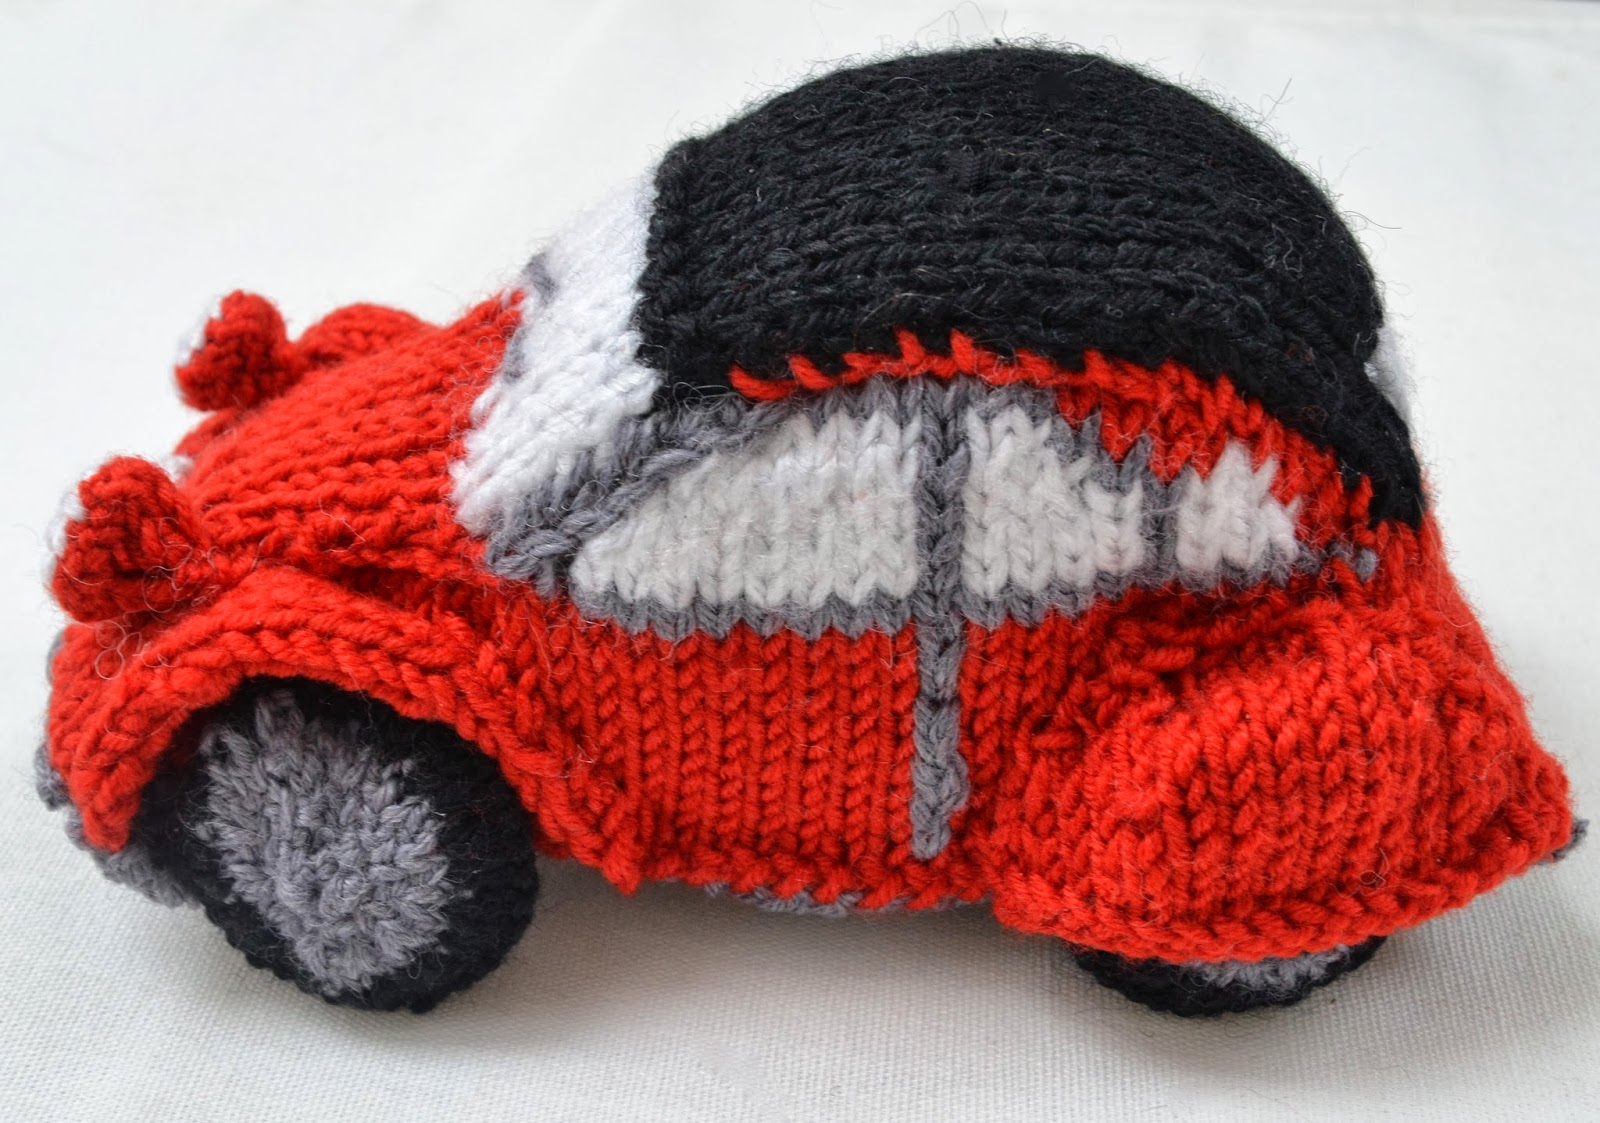 1000+ images about Extreme Knitting!! on Pinterest Knitting, Crochet Pants ...